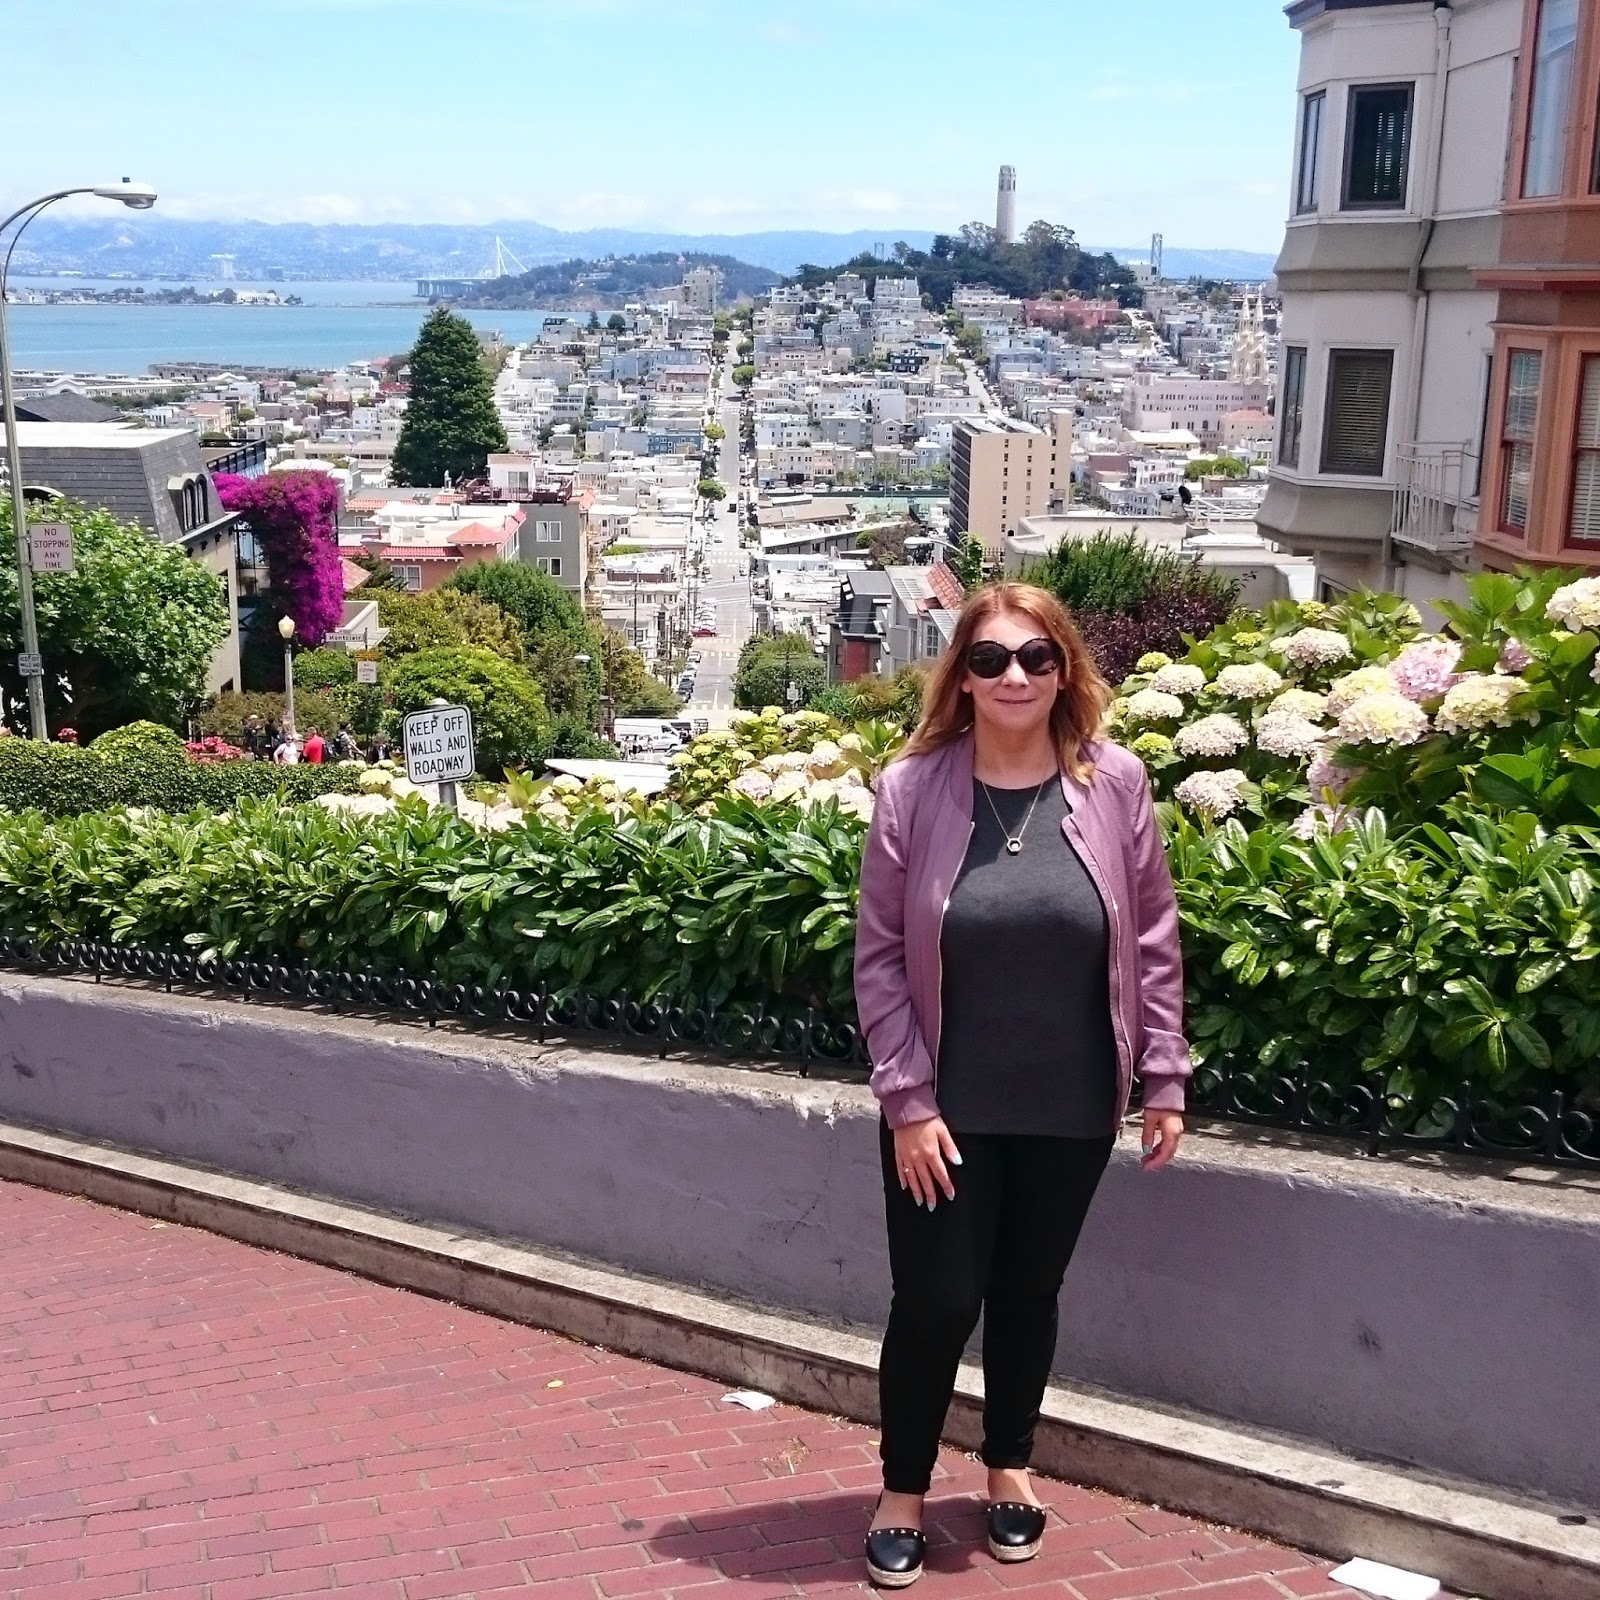 Me among the flowers at the top of Lombard Street